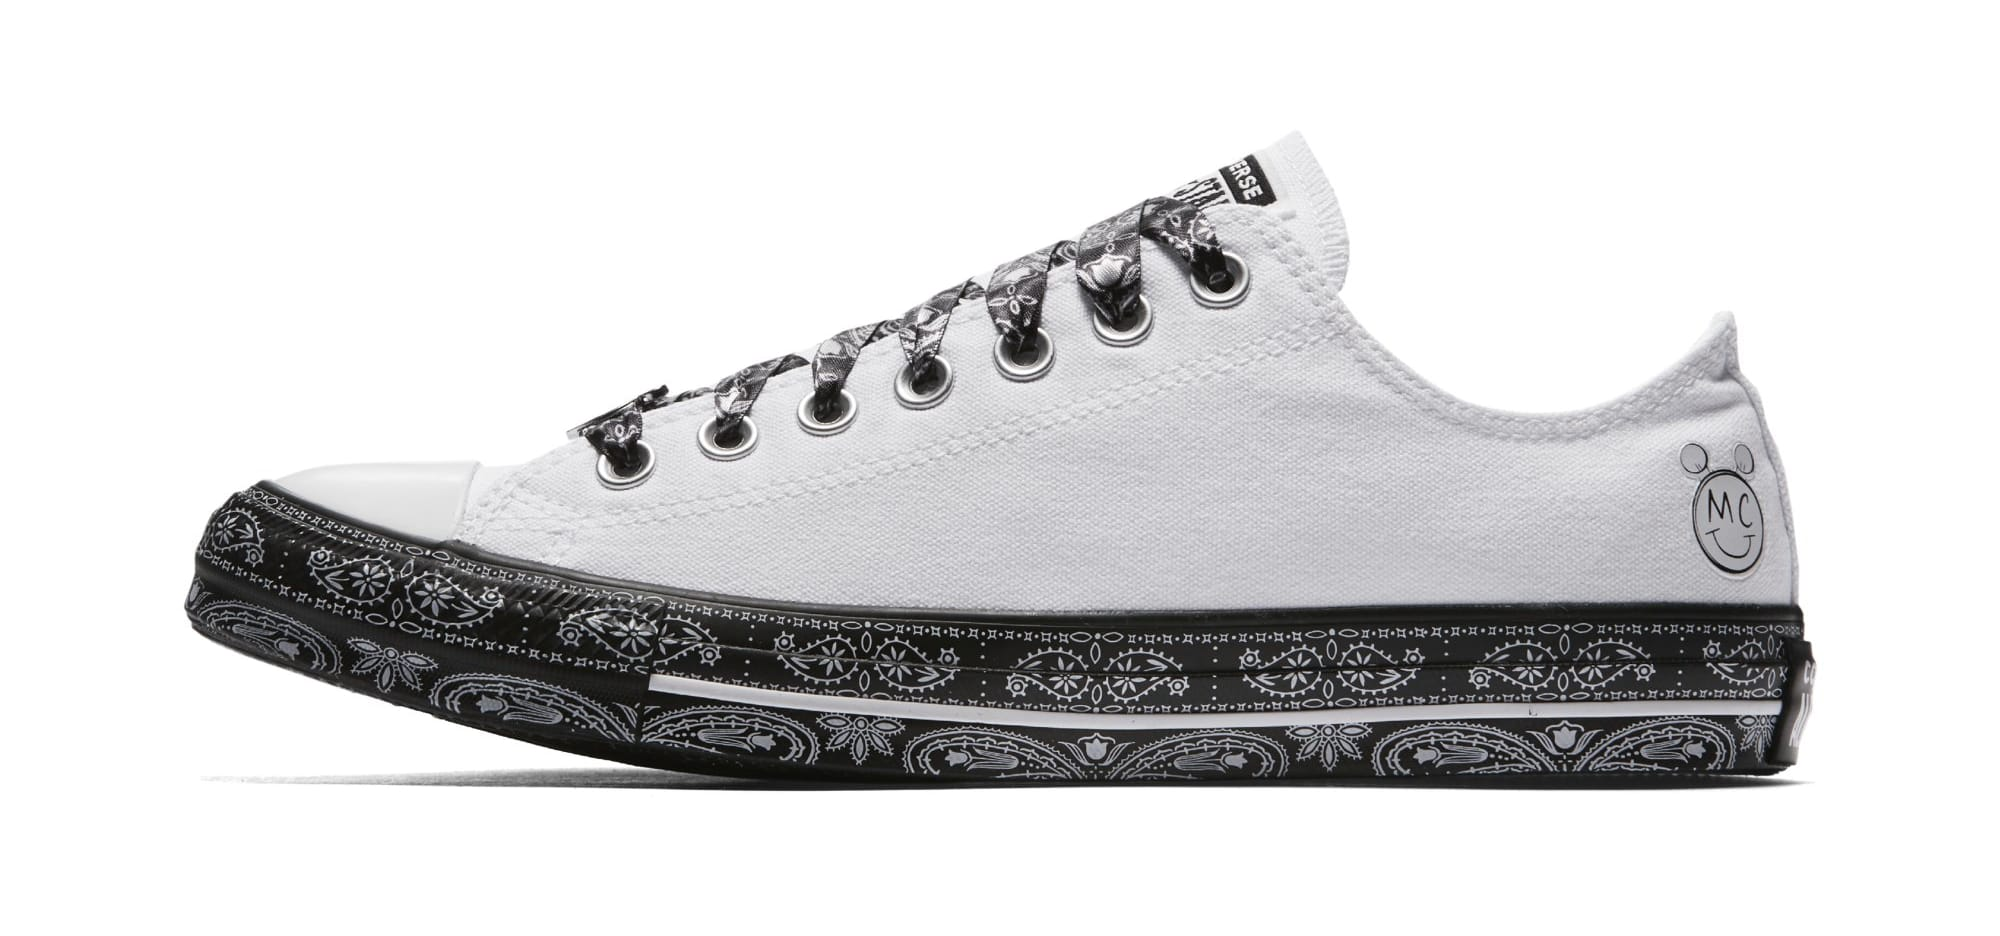 Miley Cyrus x Converse Chuck Taylor All-Star Release Date  05686daff